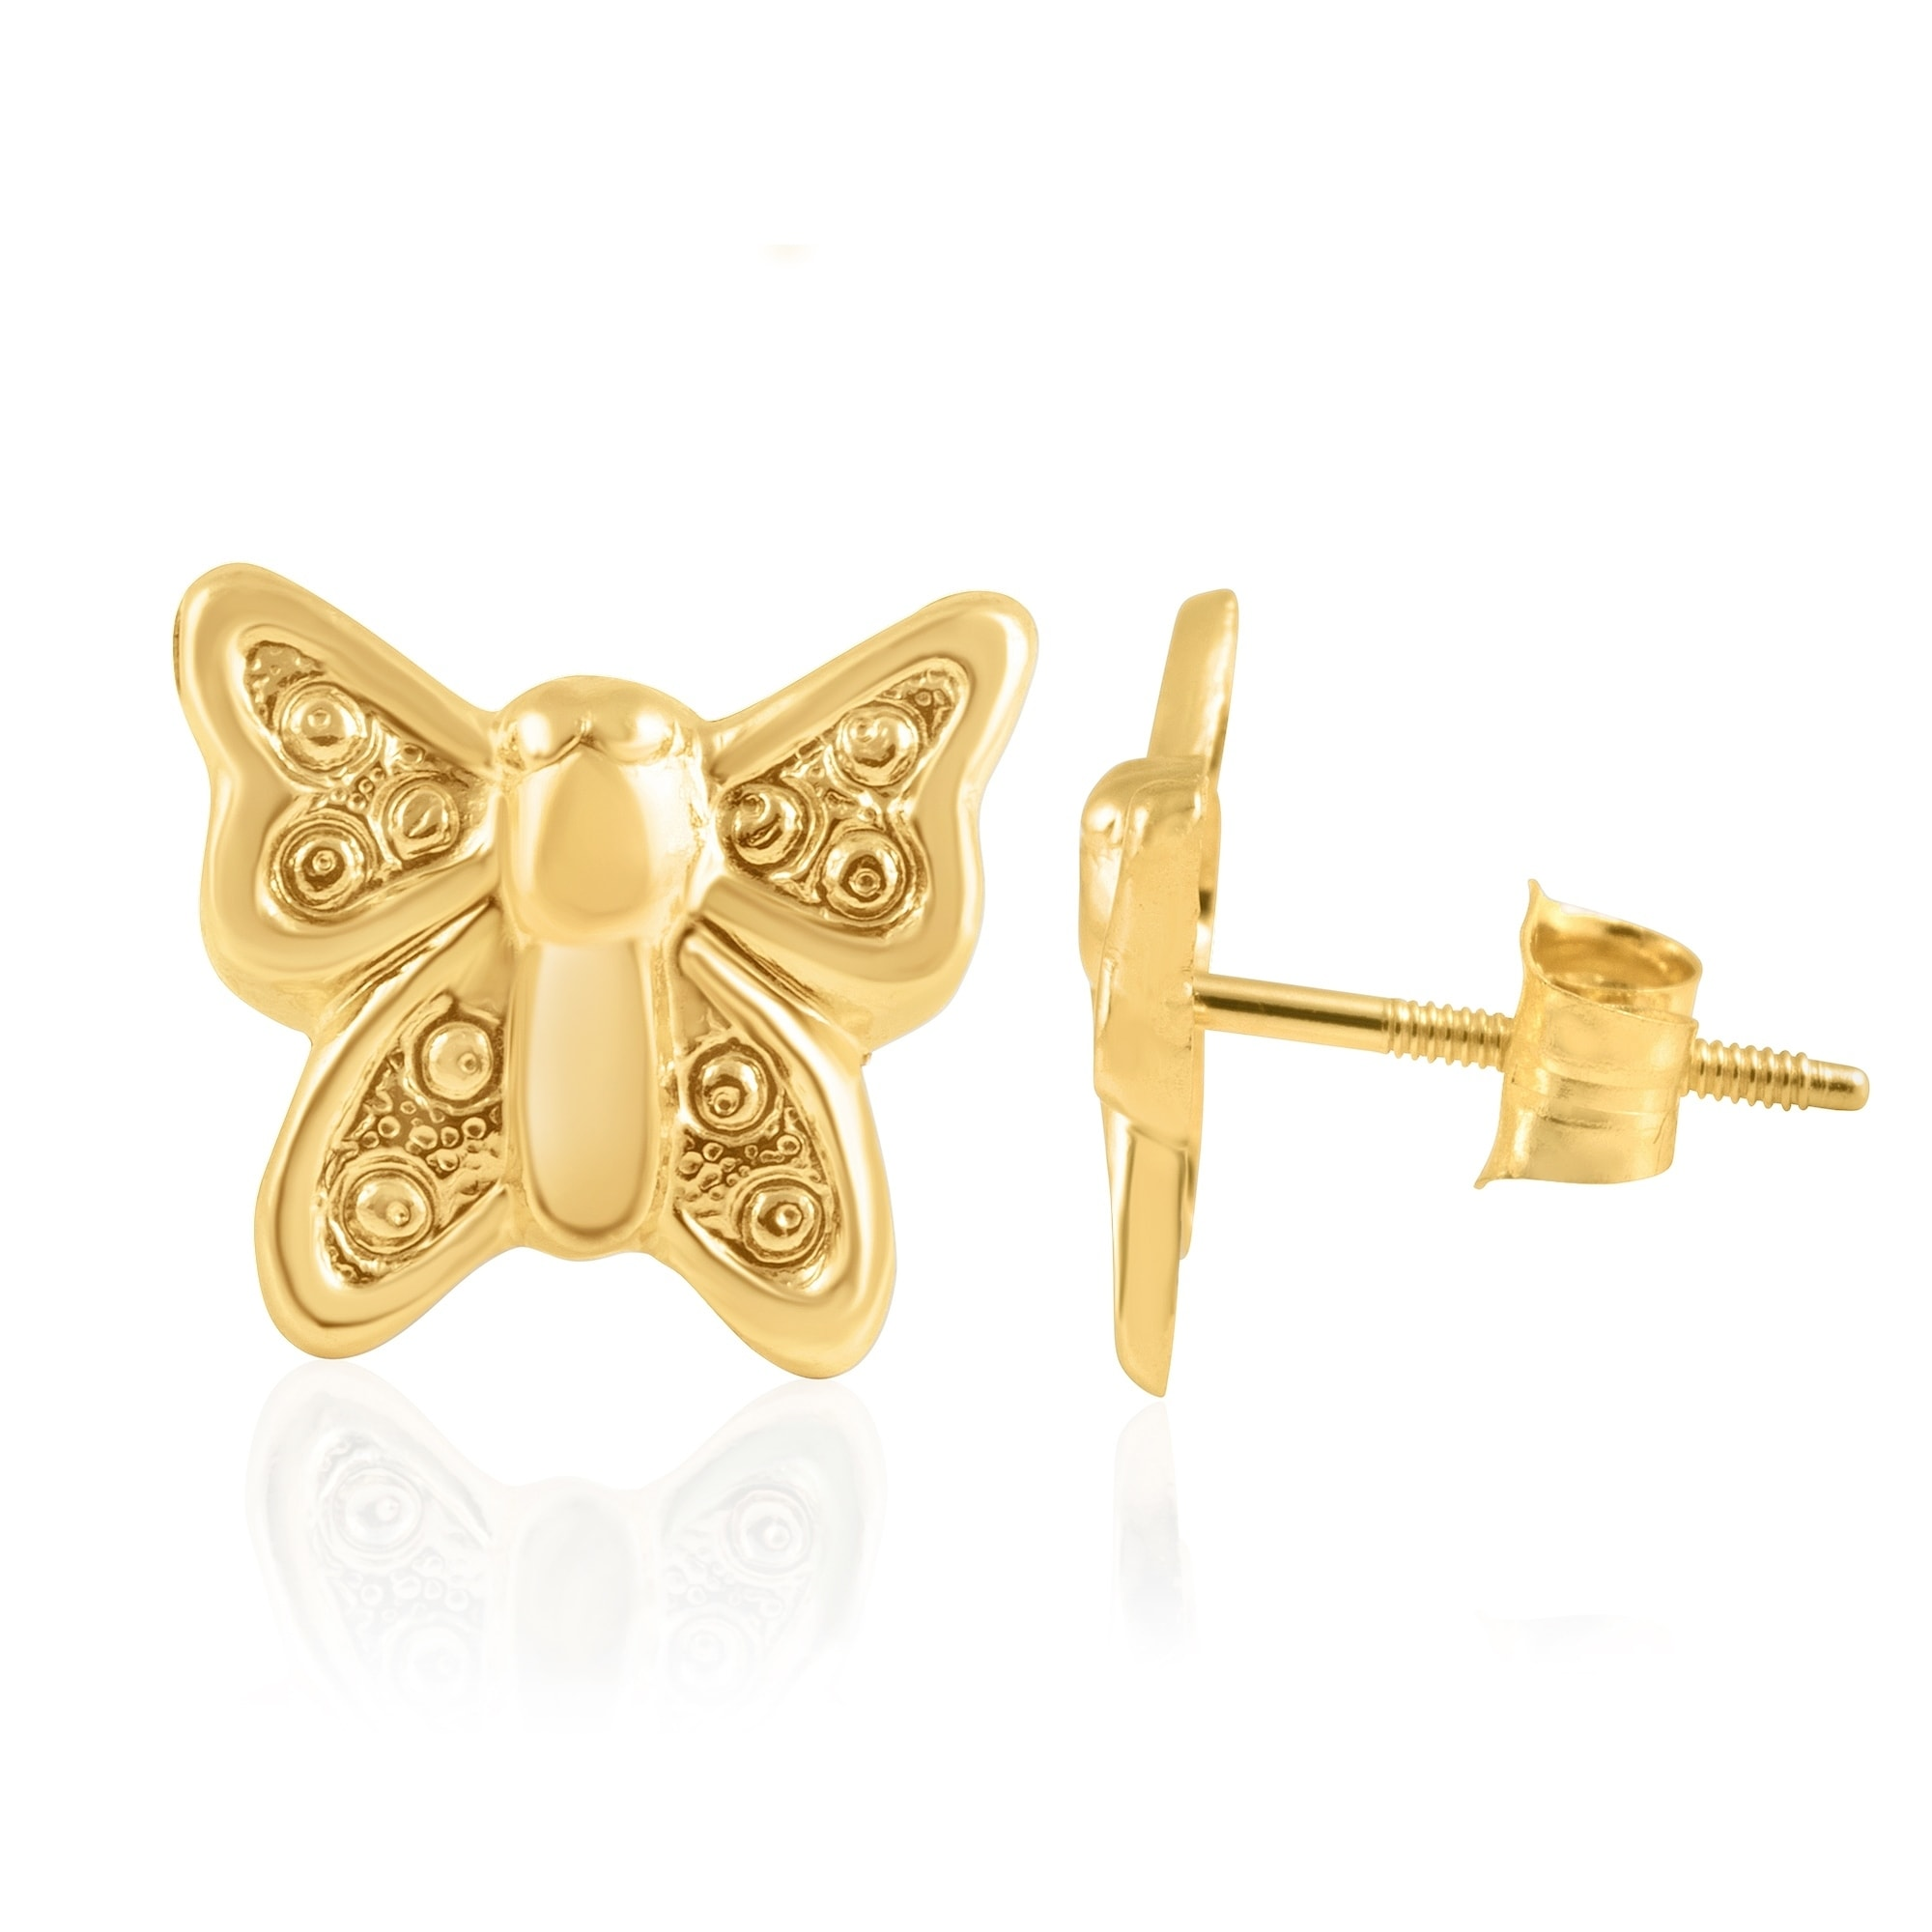 bddce068c Shop 14KT Yellow Gold Teddy Bear Children's and Baby Girls Stud Earrings -  Charming with Secure Screw Back Safety Closure - Free Shipping Today -  Overstock ...